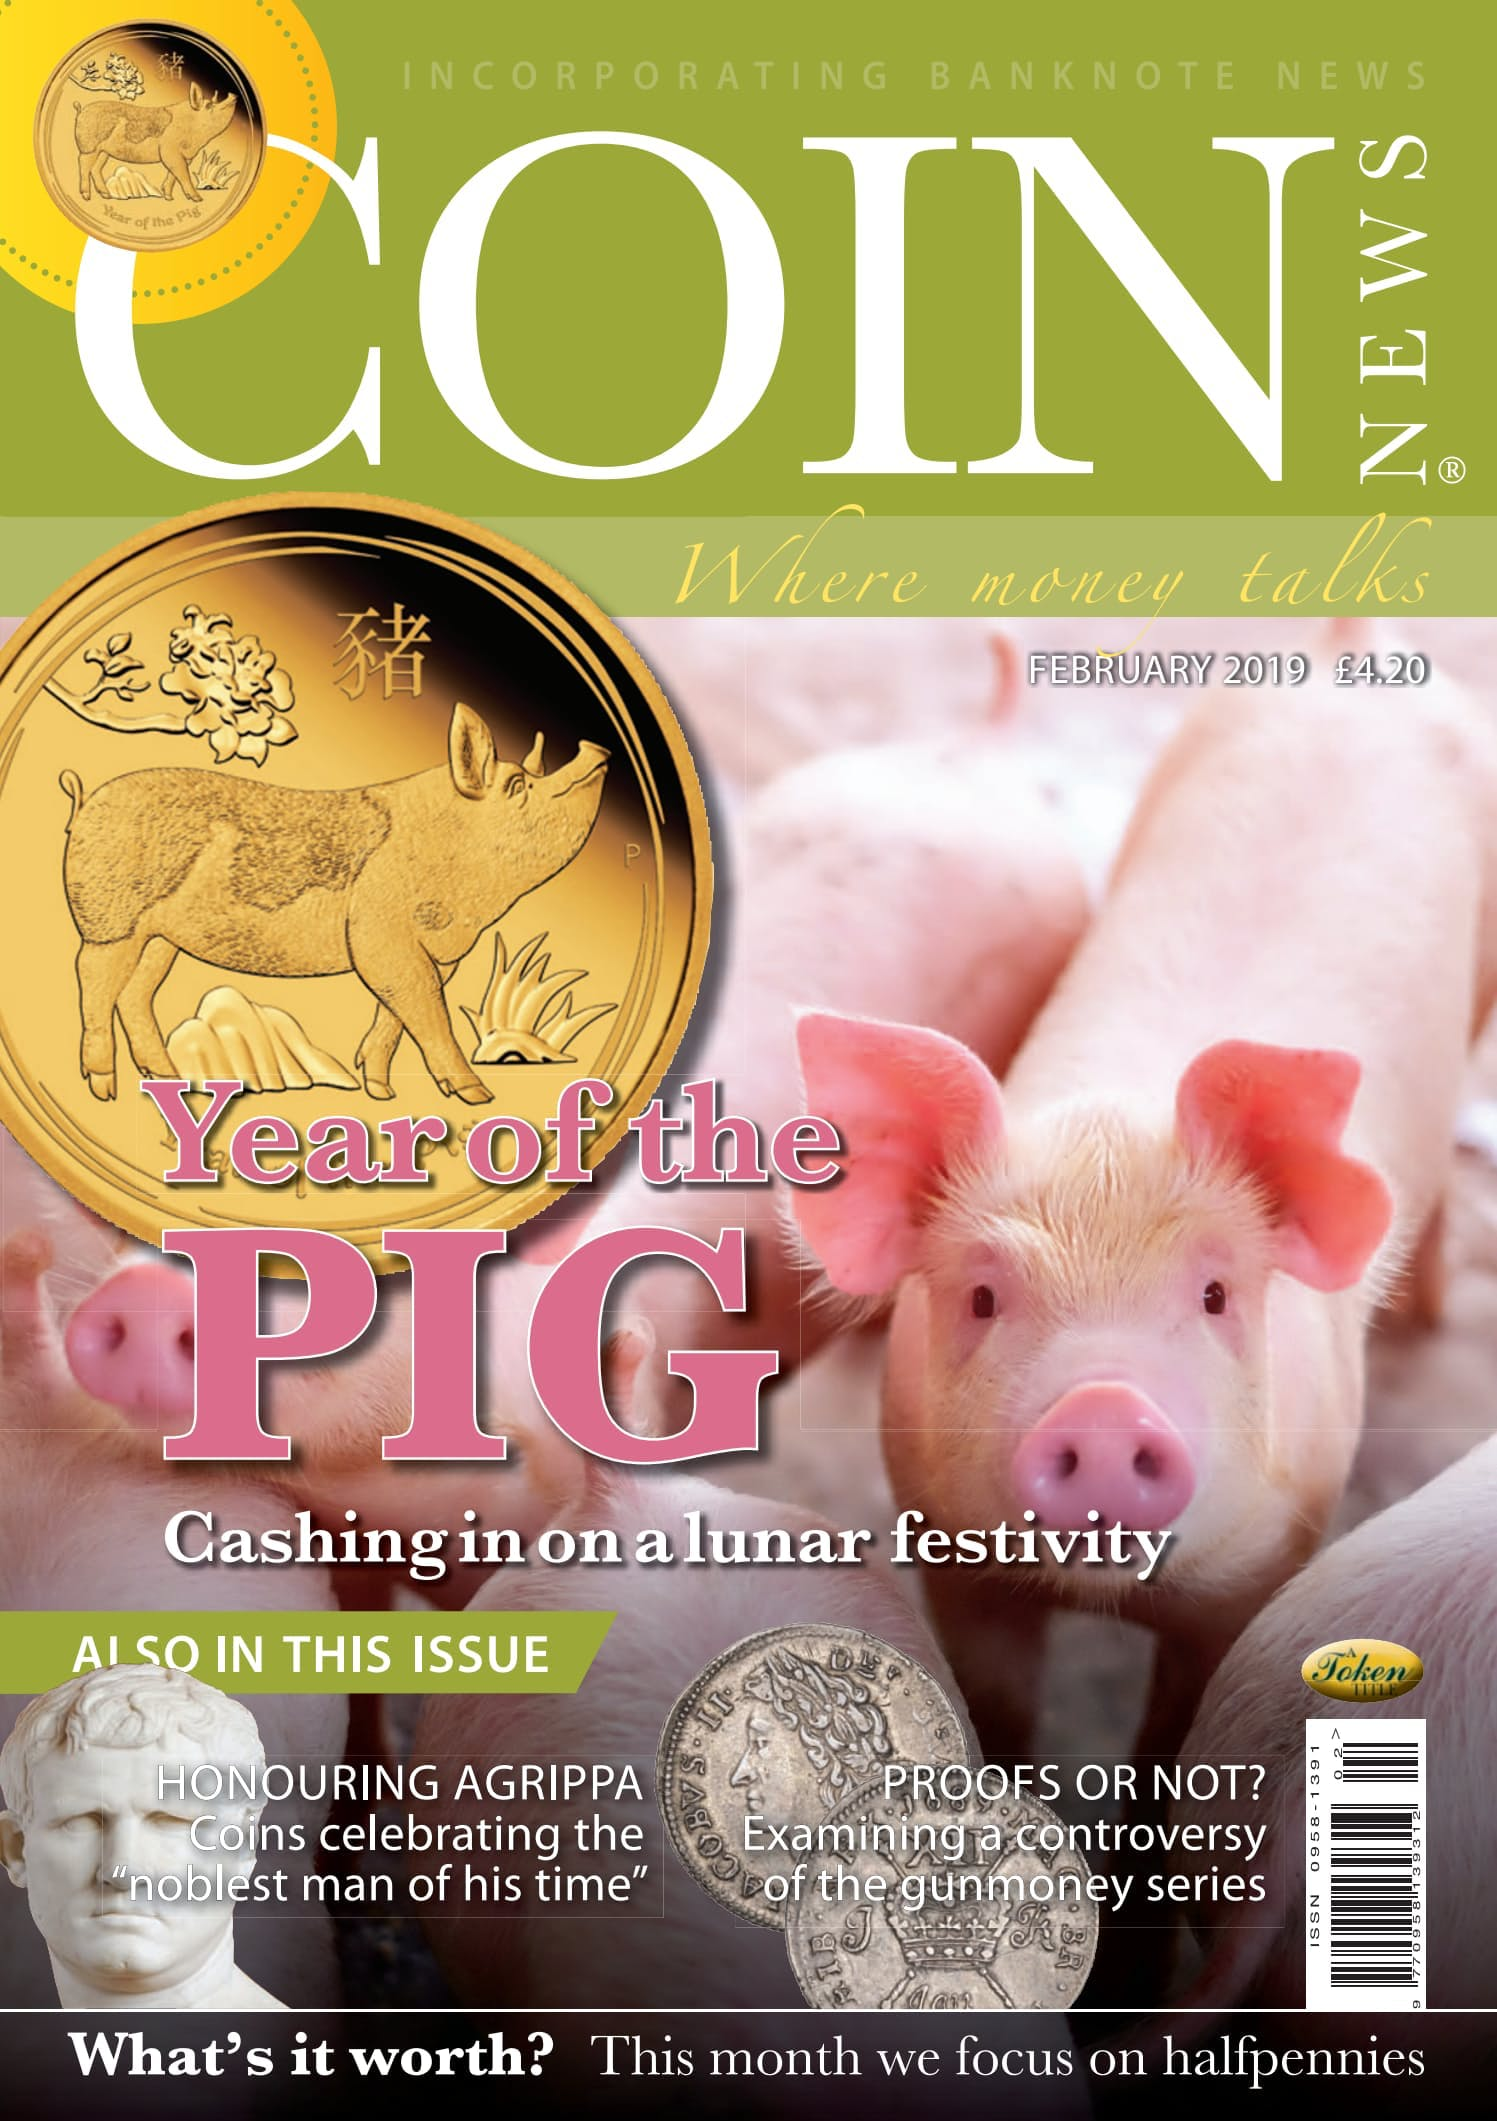 The front cover of Coin News, February 2019 - Volume 56, Number 2